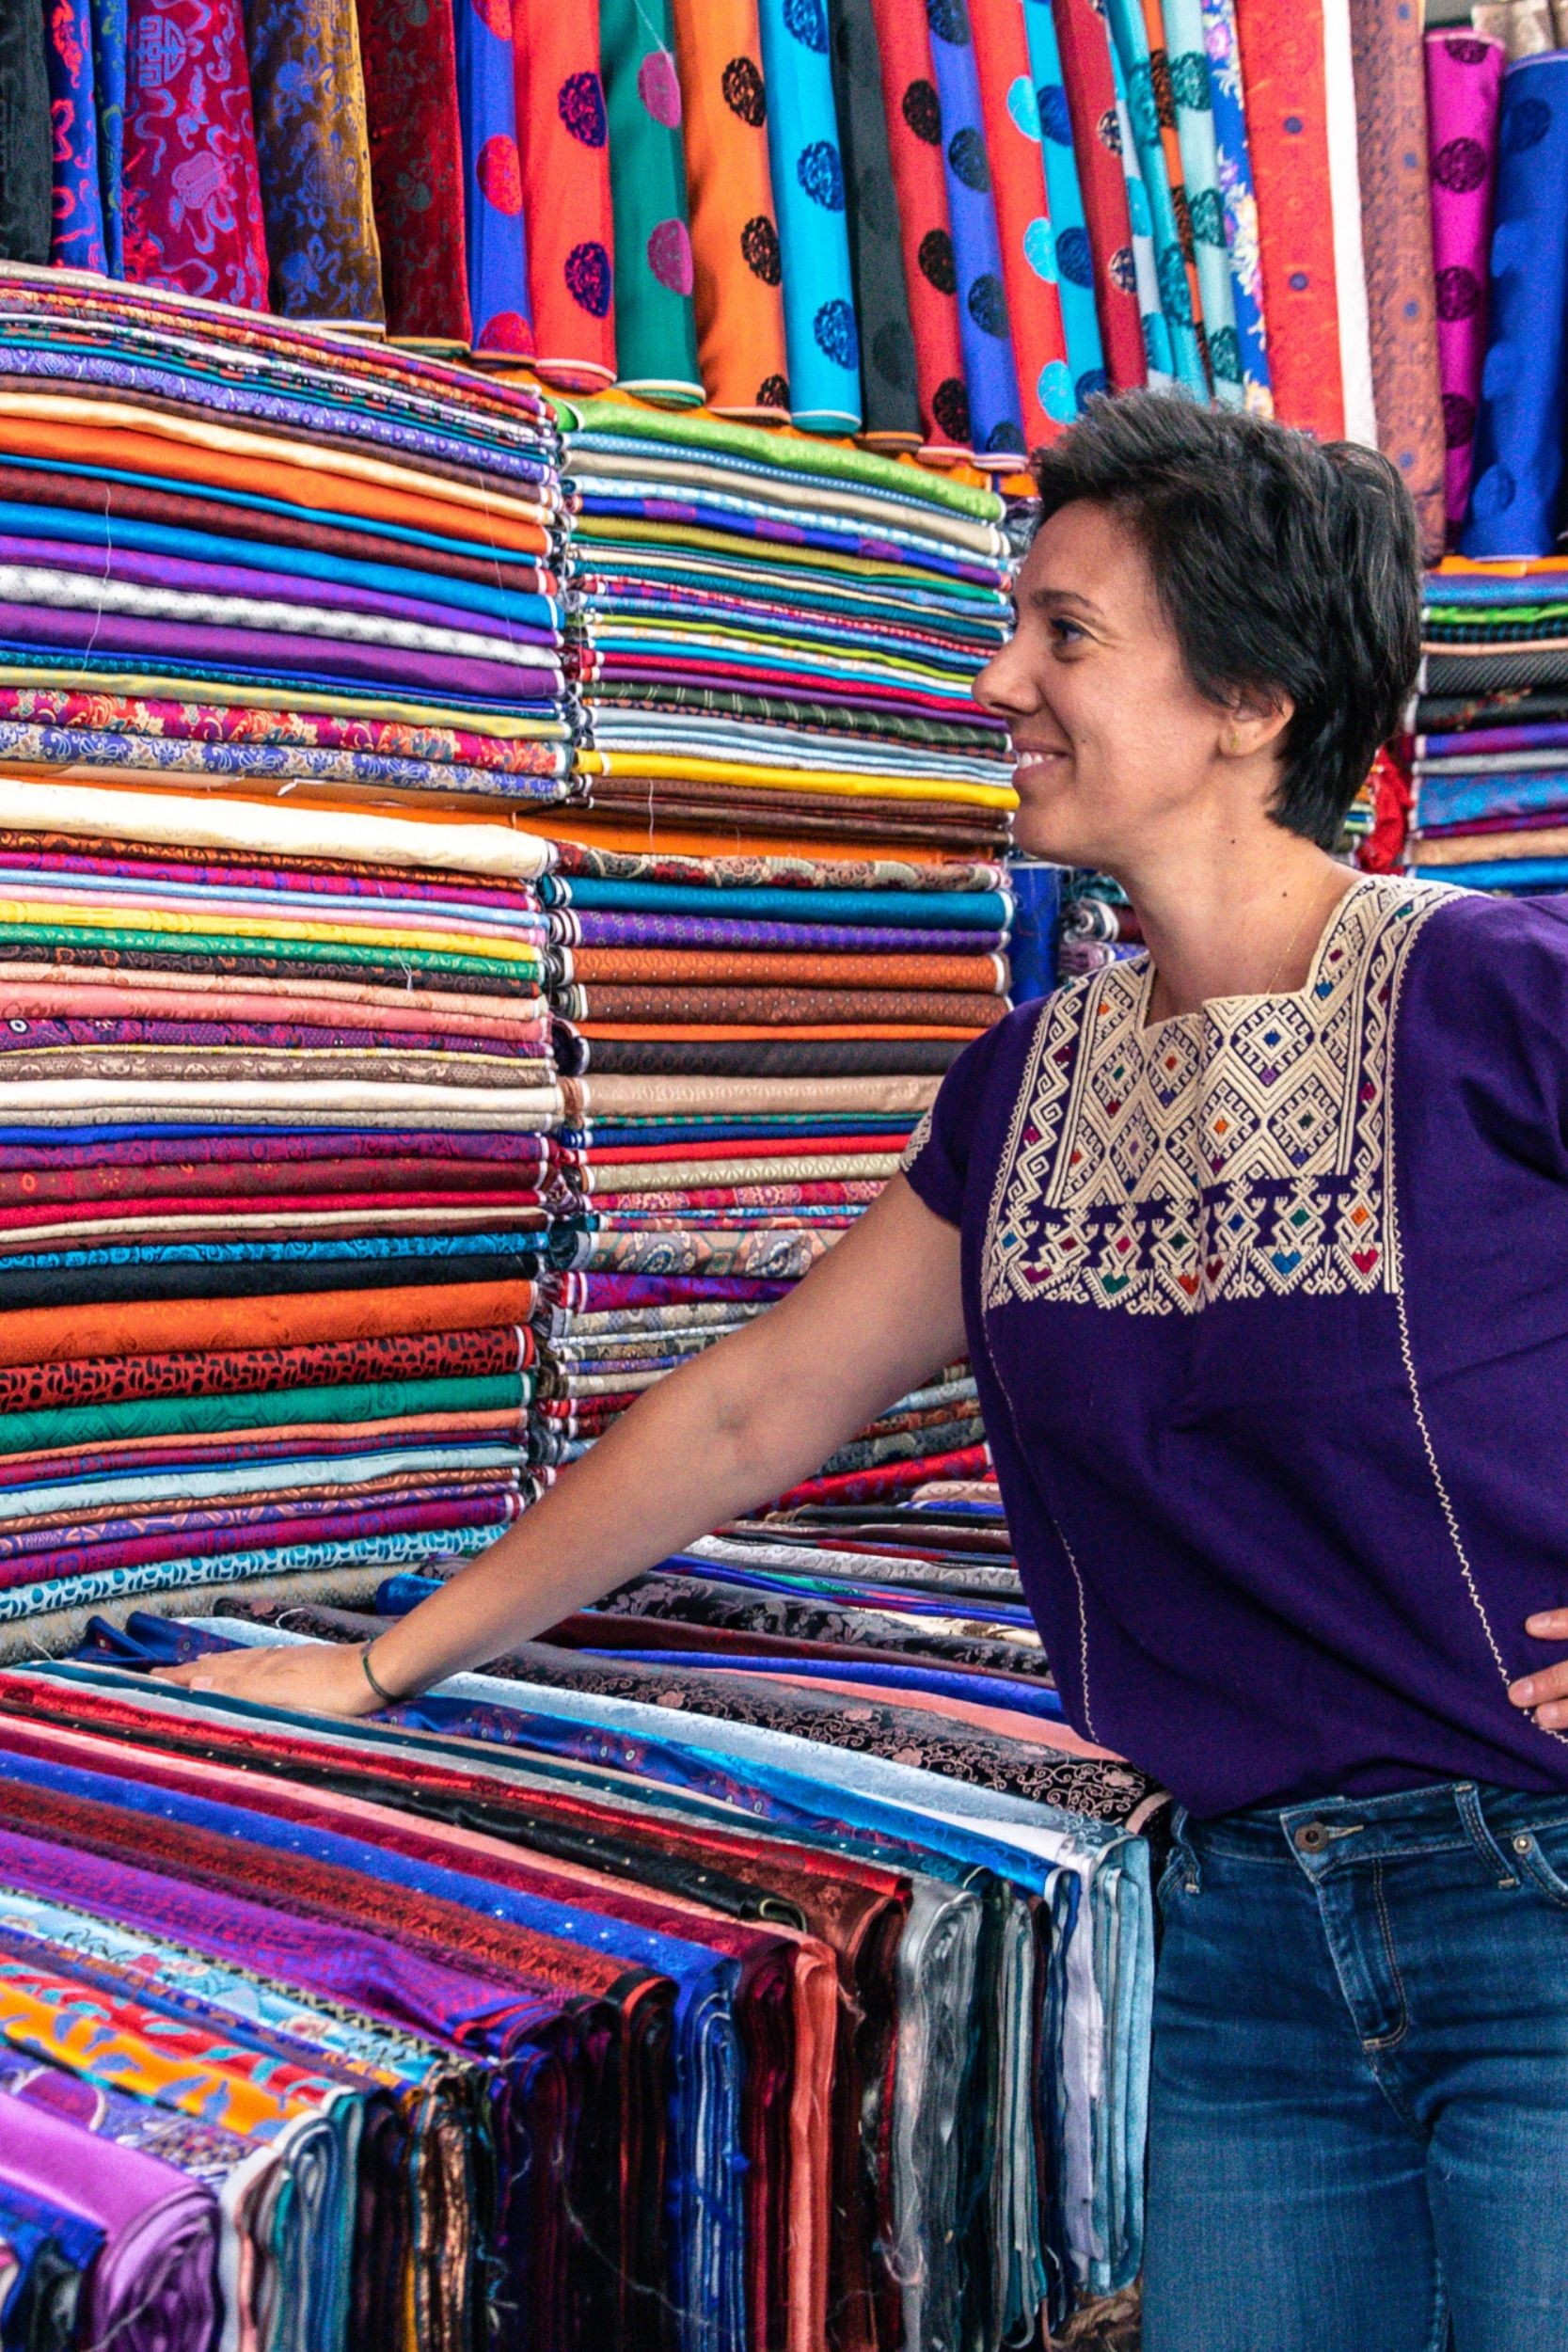 elena selecting textiles in mongolia for her new collection of limited edition shoes and bags